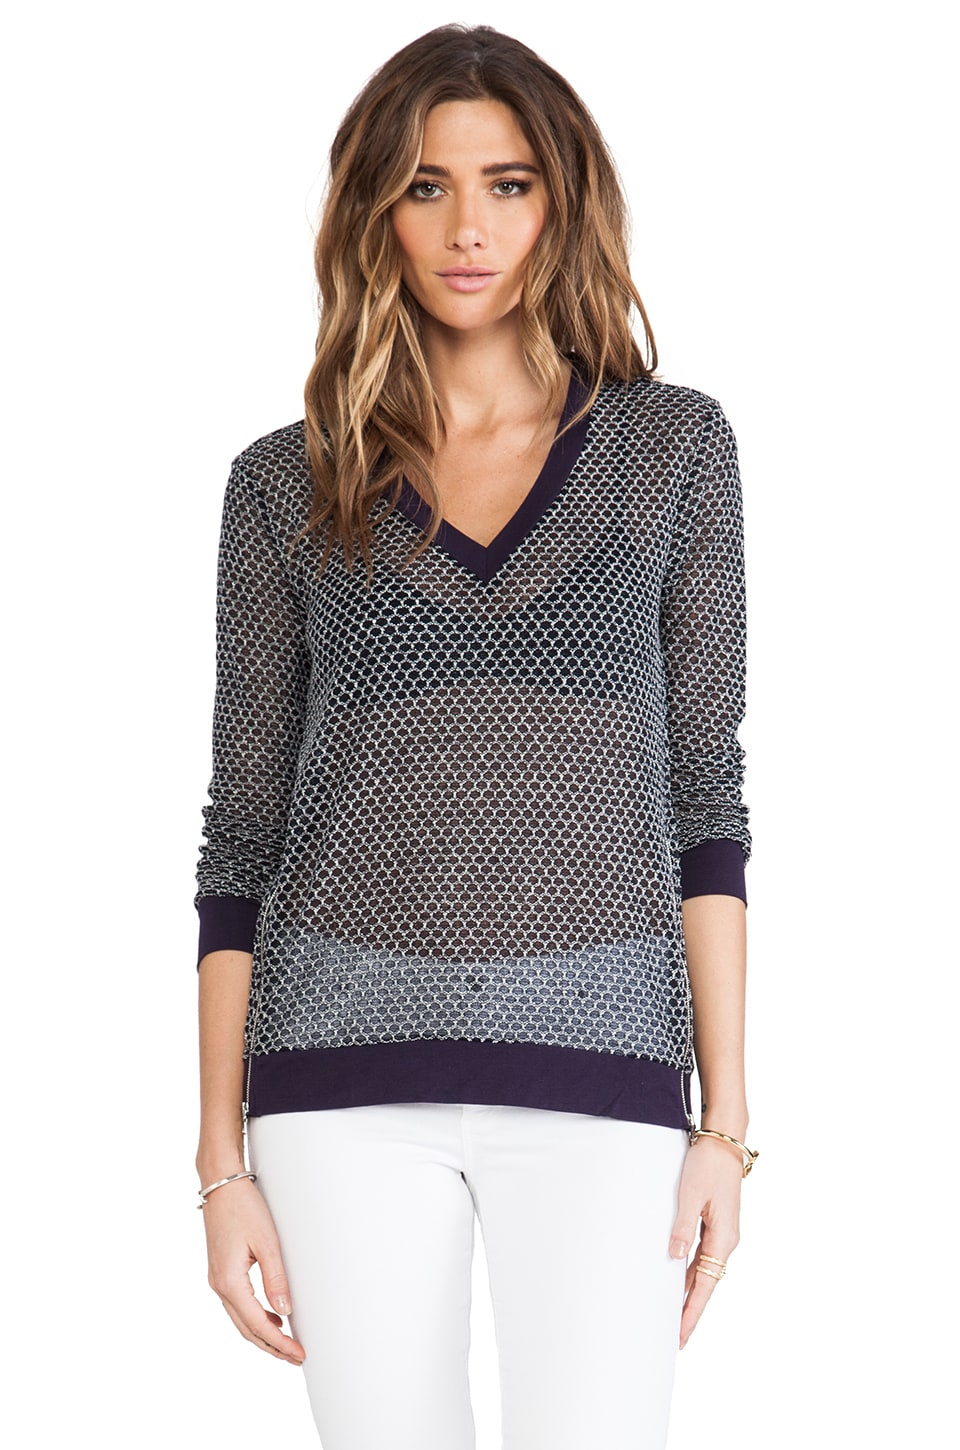 TOWNSEN Honey Comb Long Sleeve in Abyss